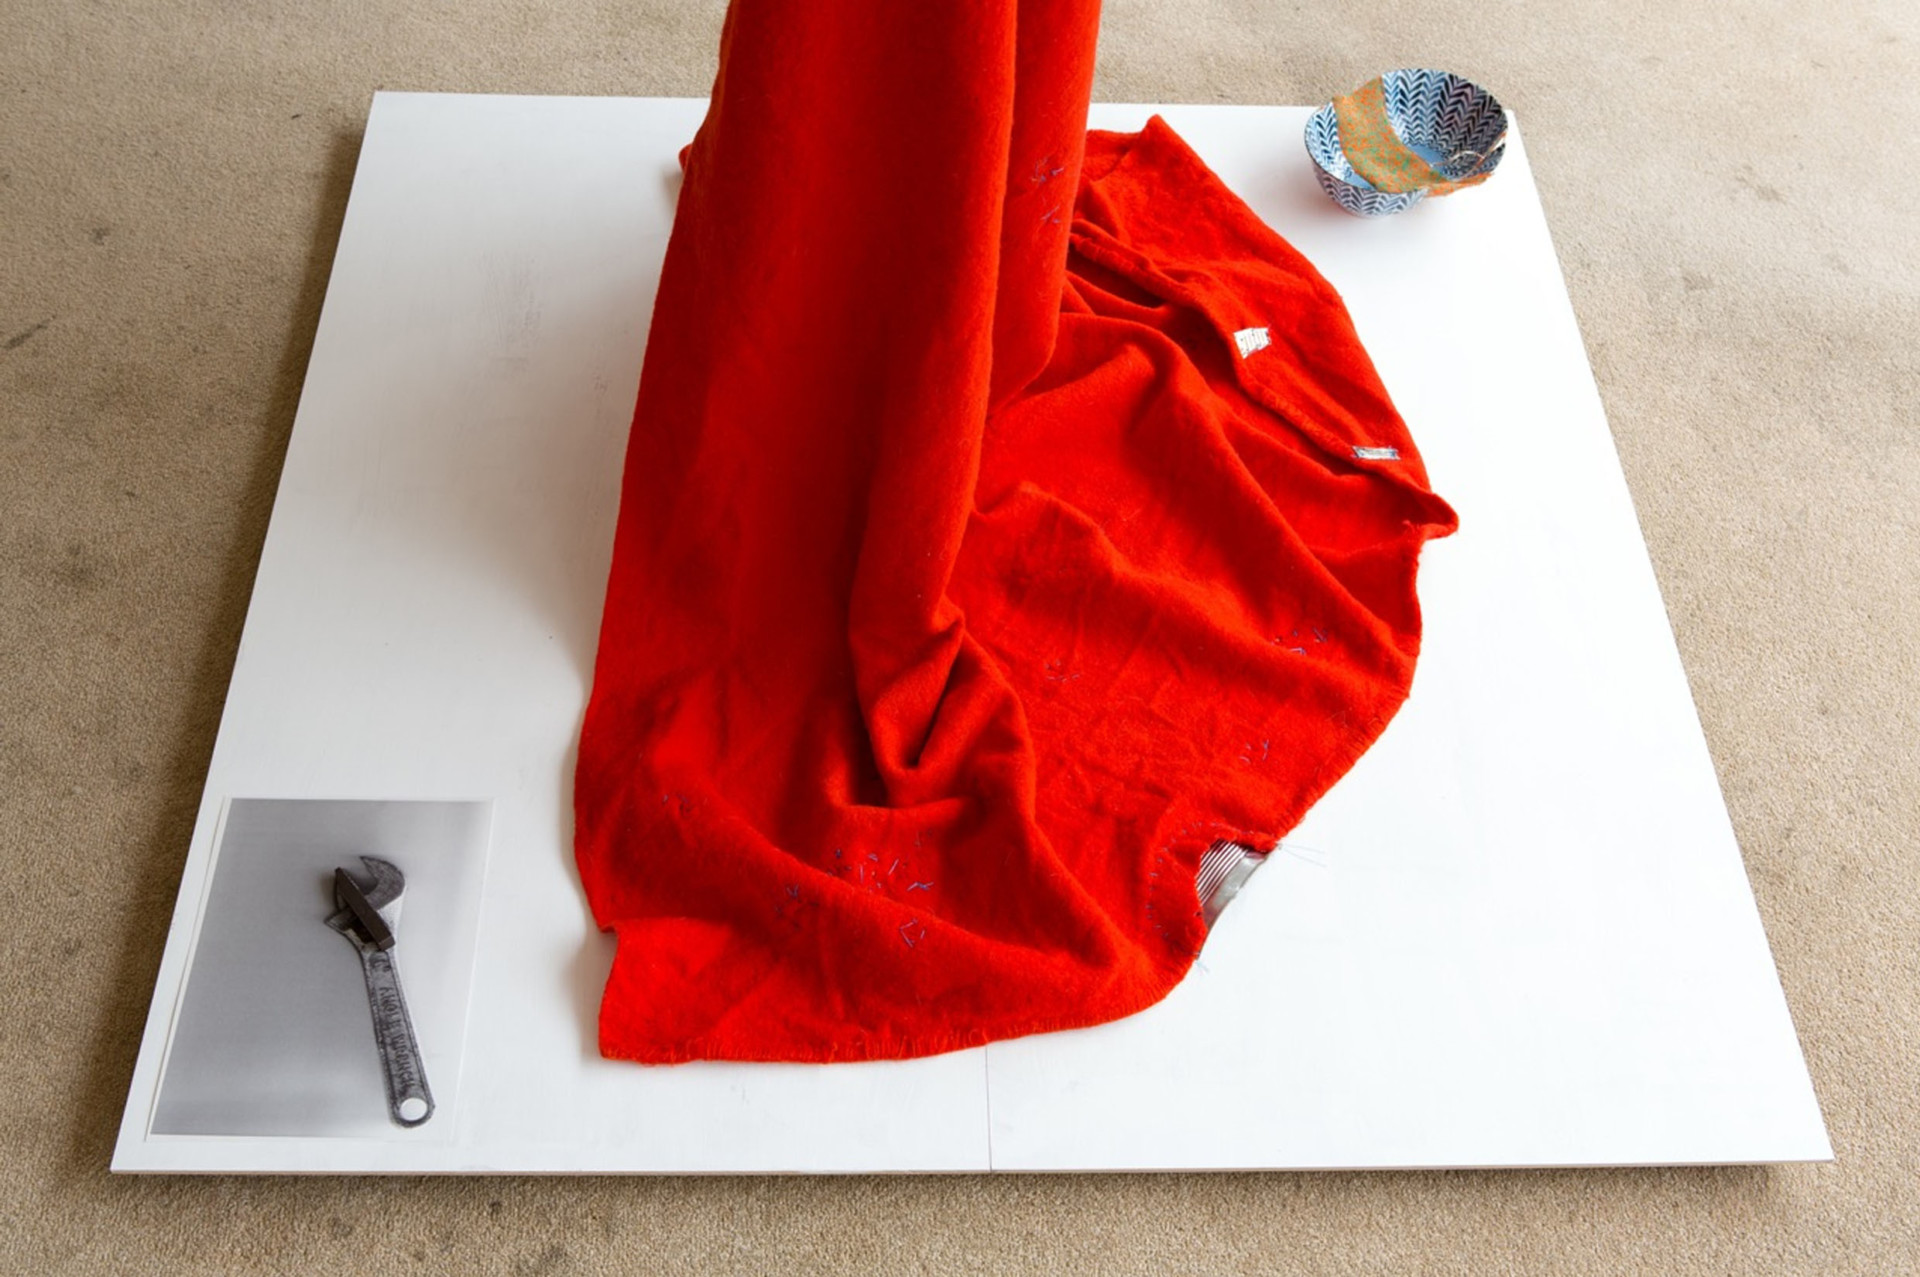 Bridget Harvey Red Blanket, Blue Bowl, Wrench